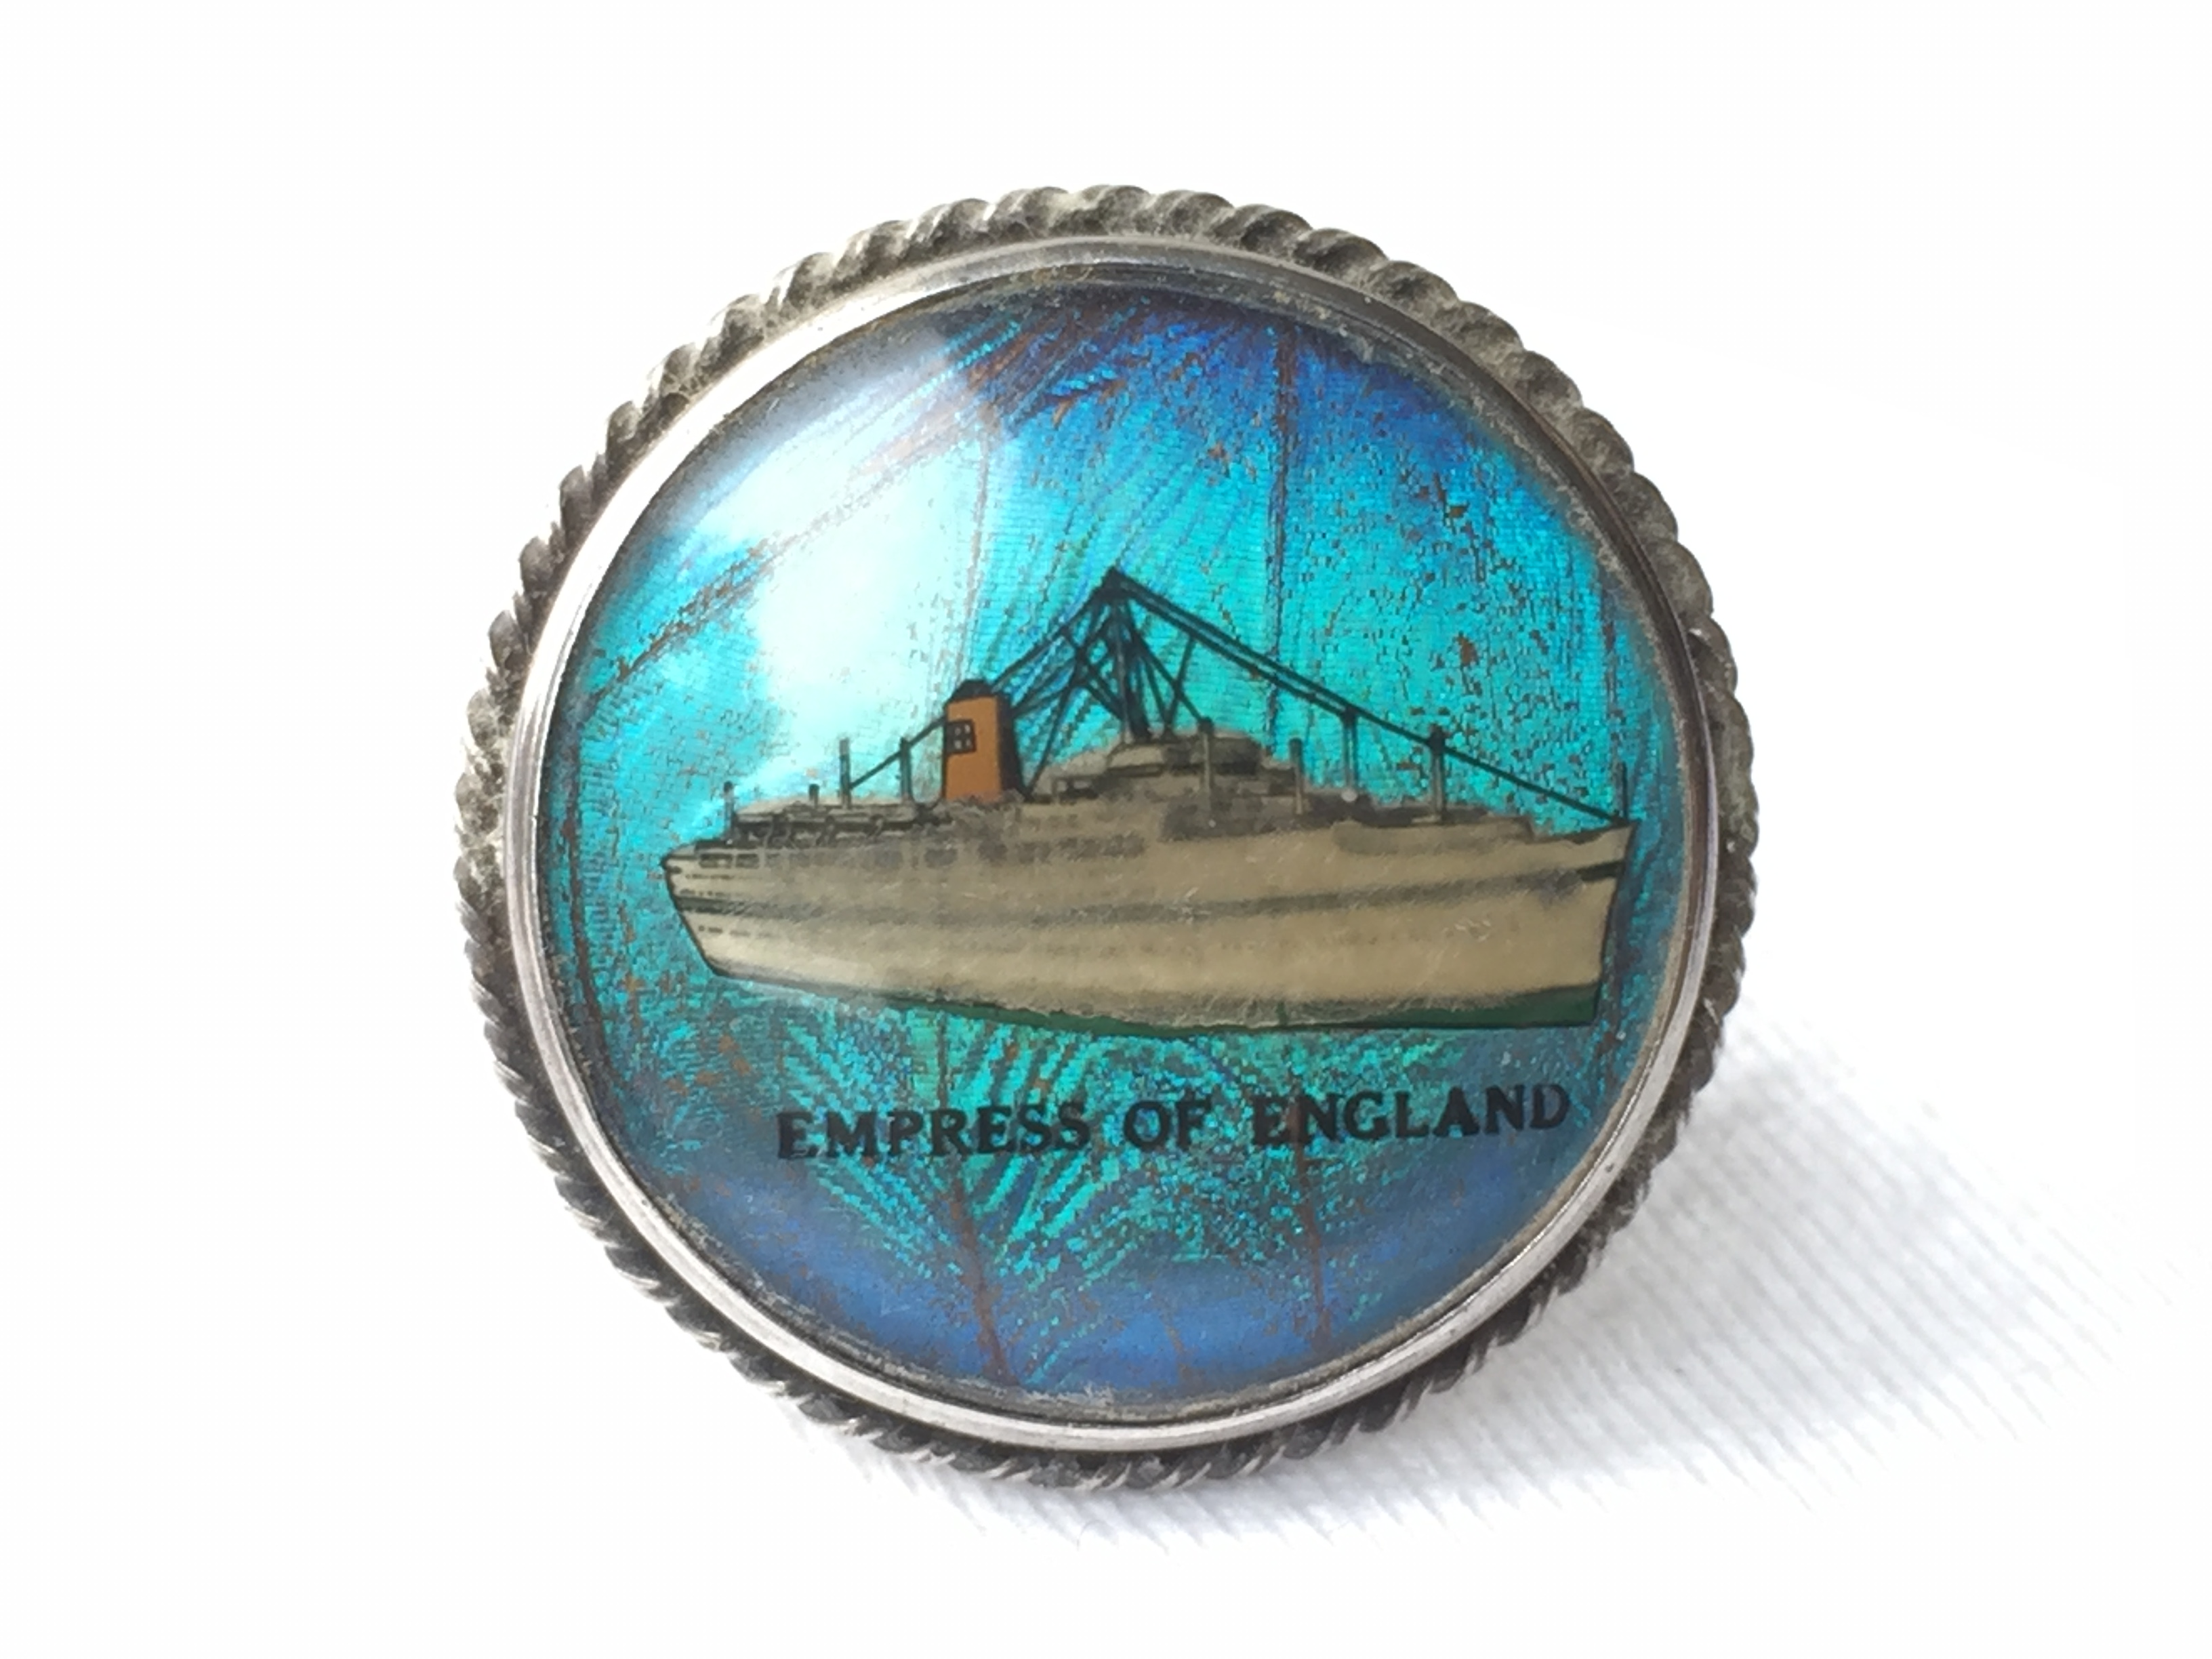 LAPEL PIN BADGE FROM THE CANADIAN PACIFIC LINE VESSEL THE EMPRESS OF ENGLAND 1956-1970